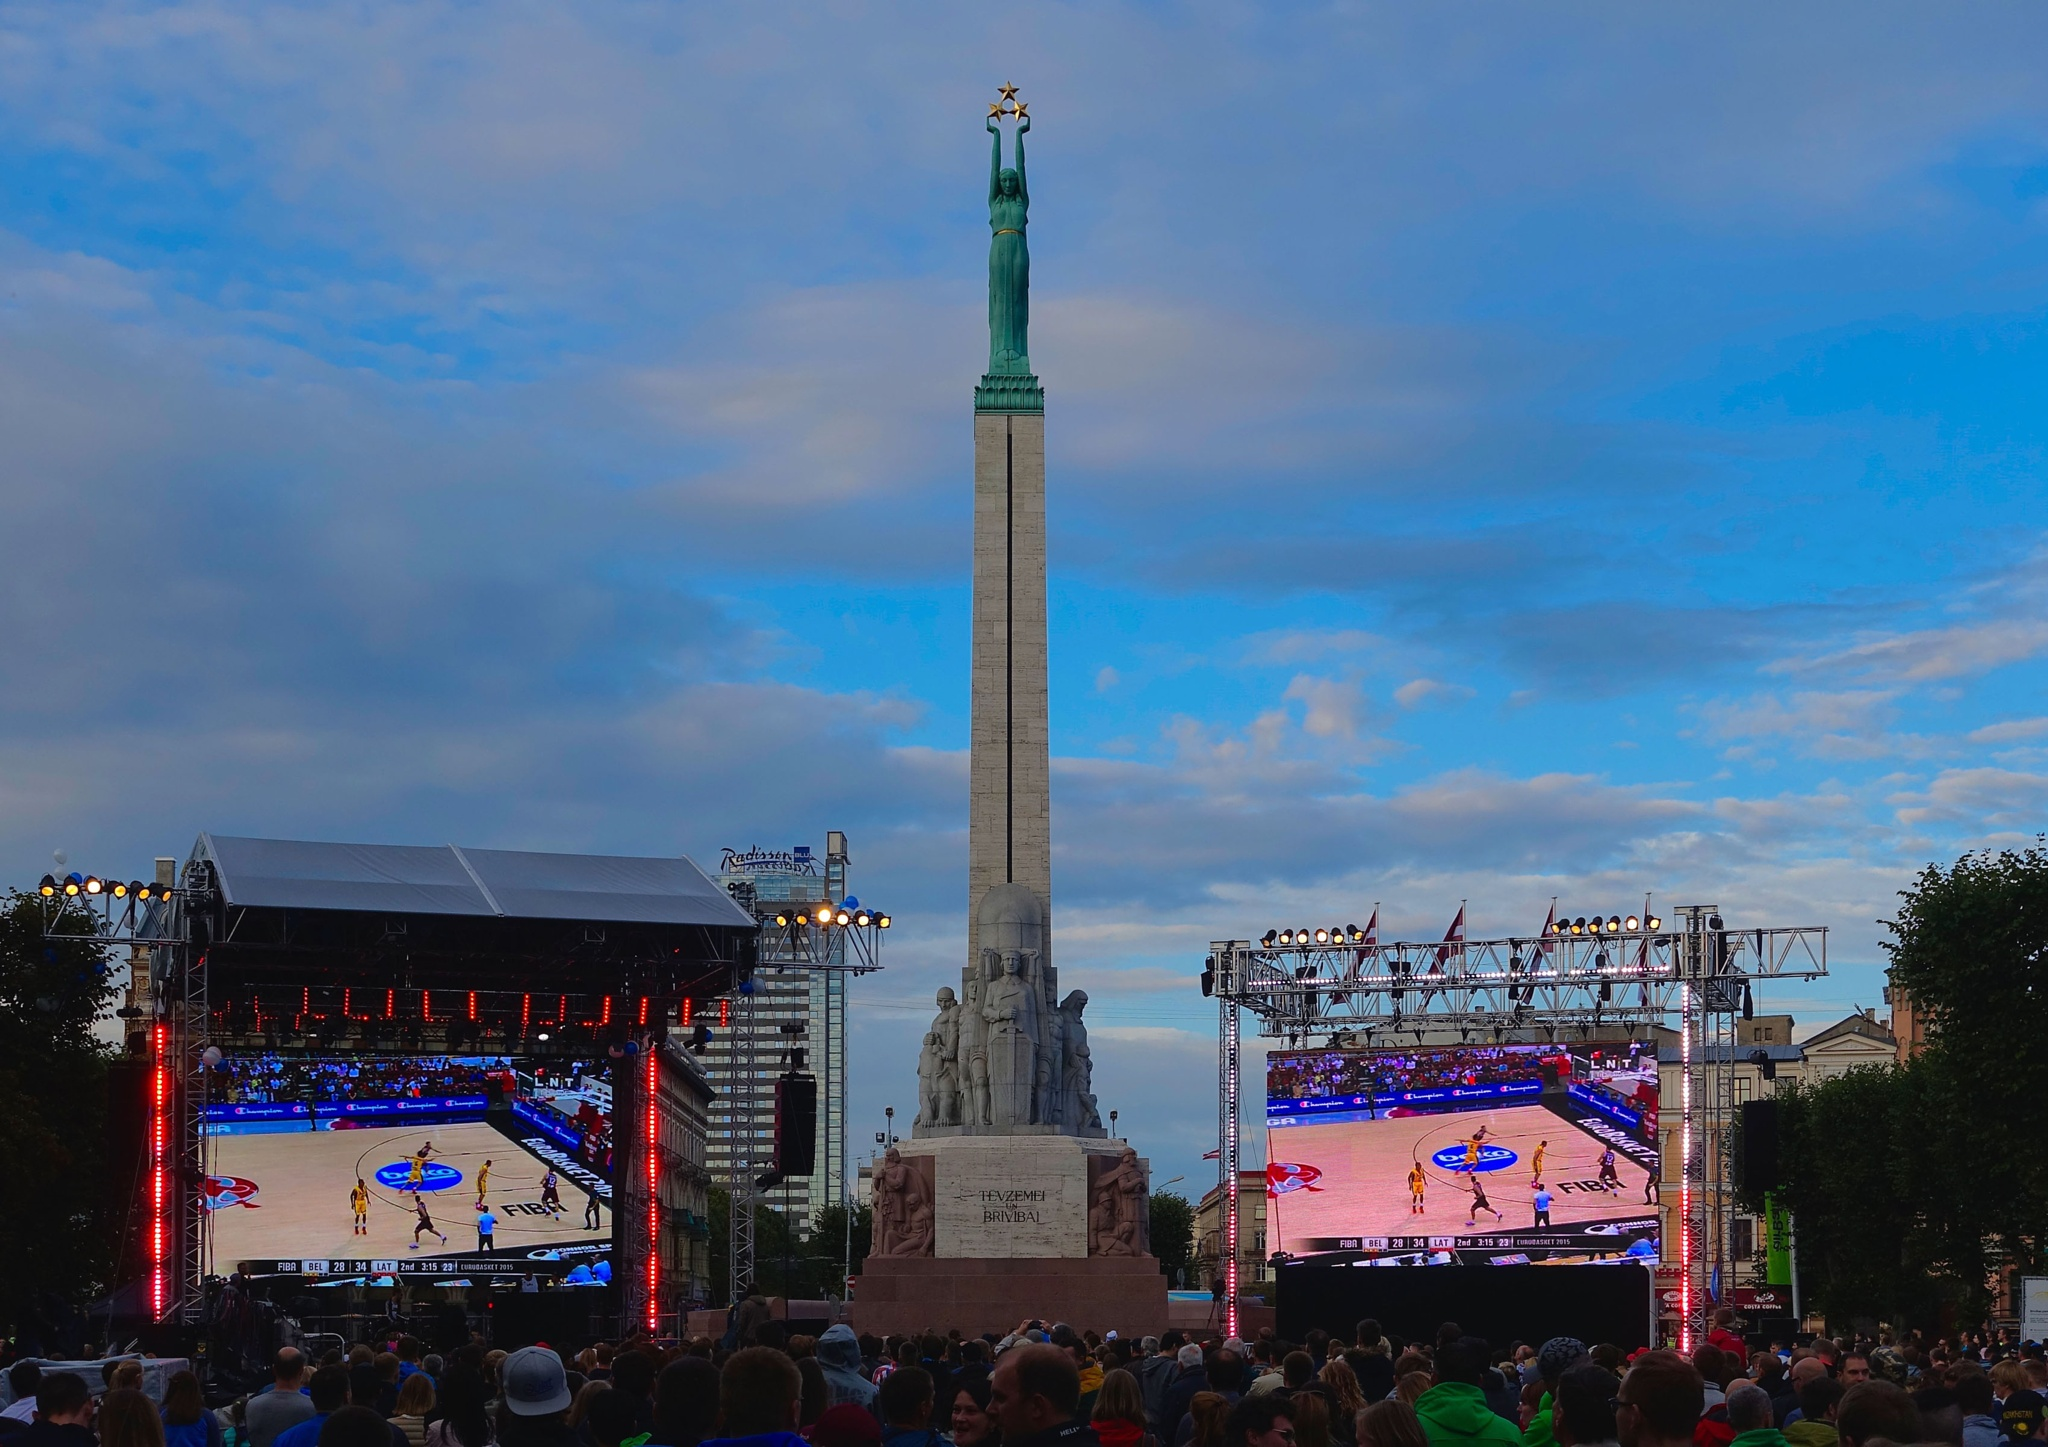 The Freedom Monument in Riga during the Basketball European Championship by Erwin Widmer